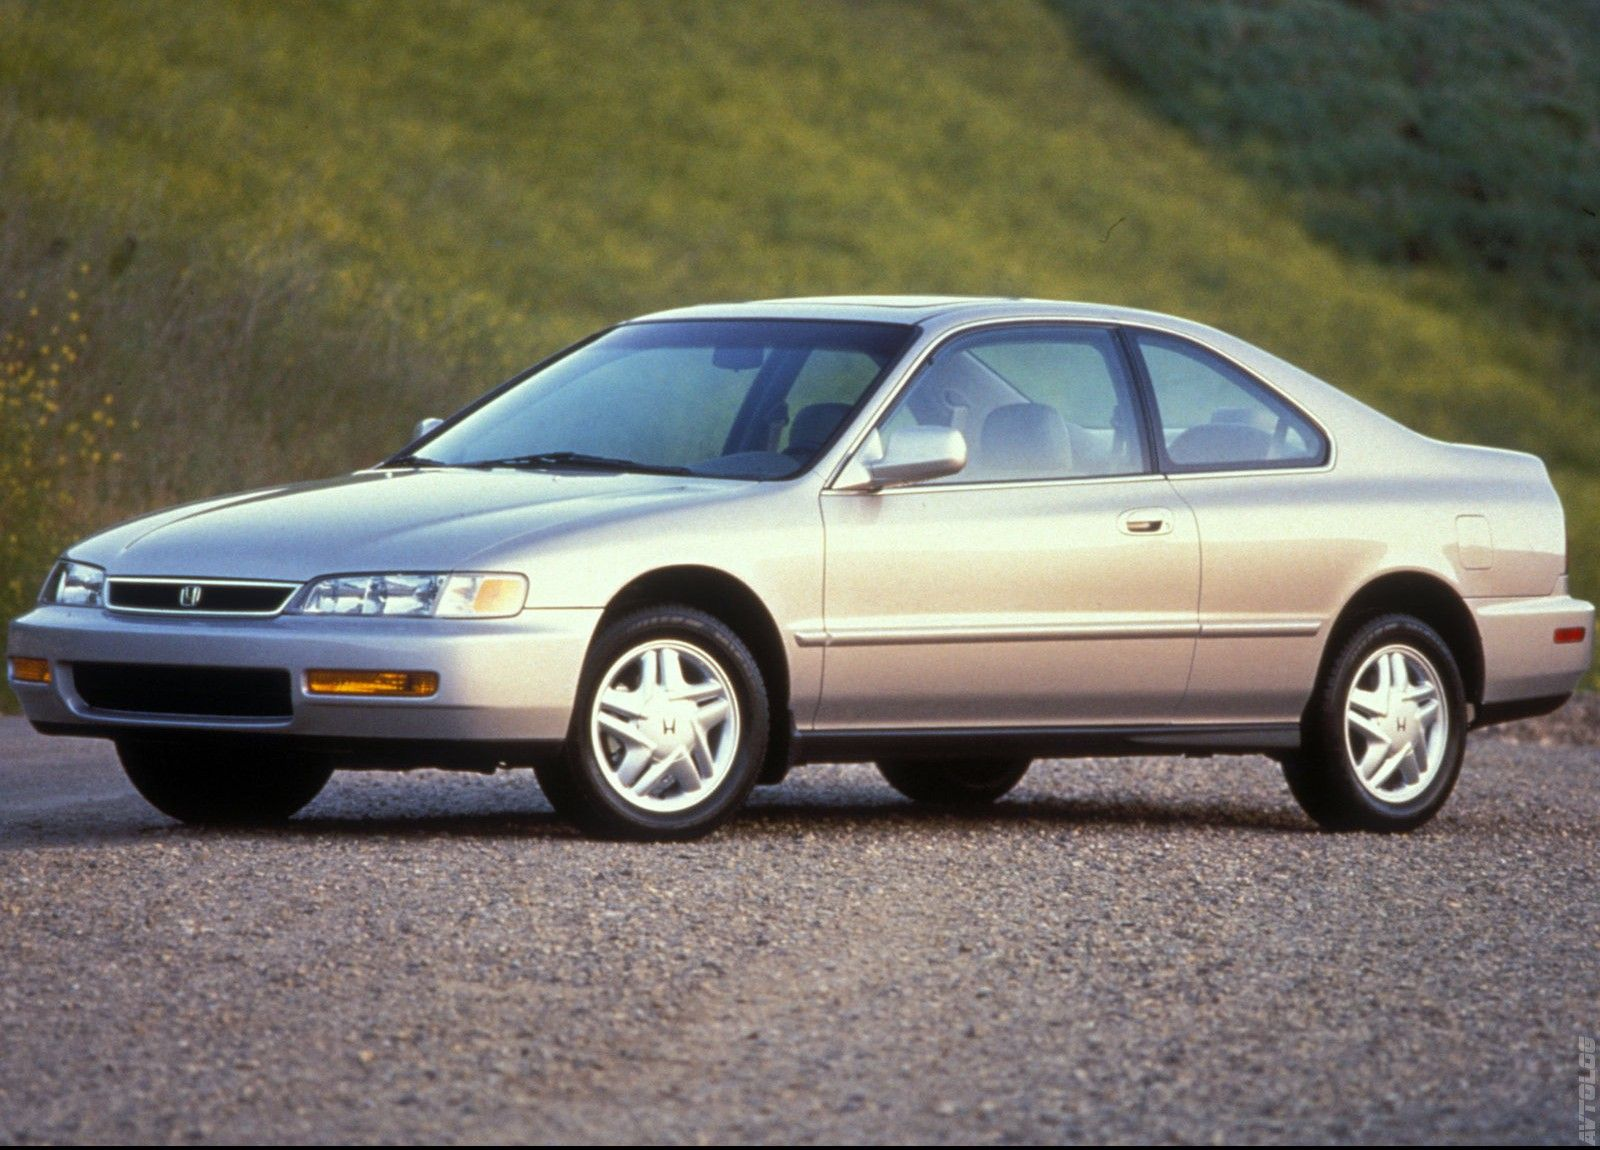 accord-coupe-1994.jpg (1600×1150) | Japan cars | Pinterest | Japan